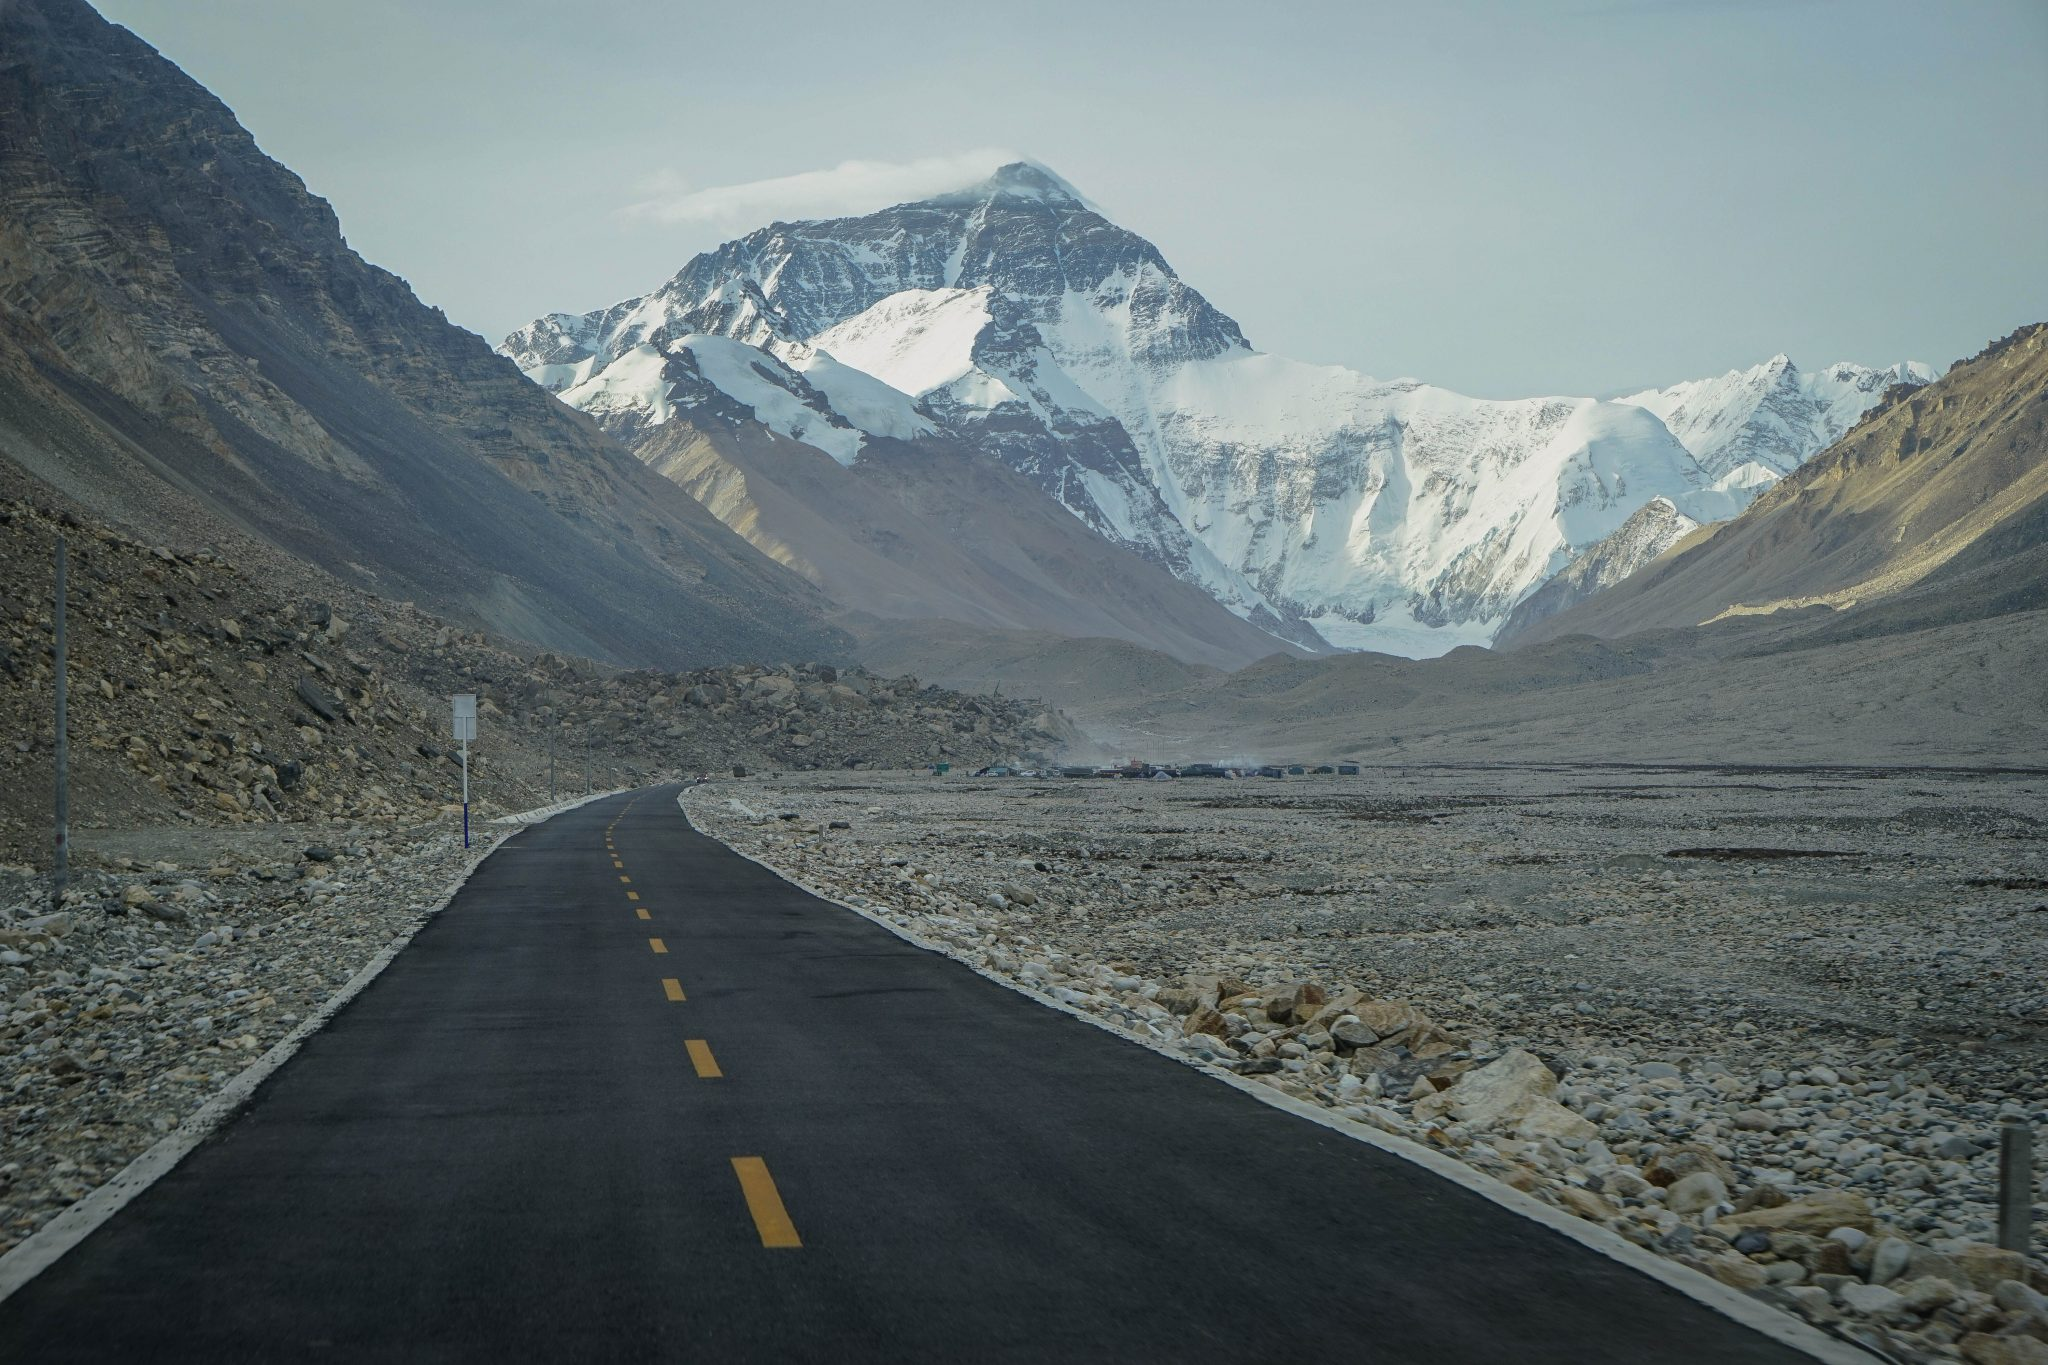 highway to everest mount - photo #38